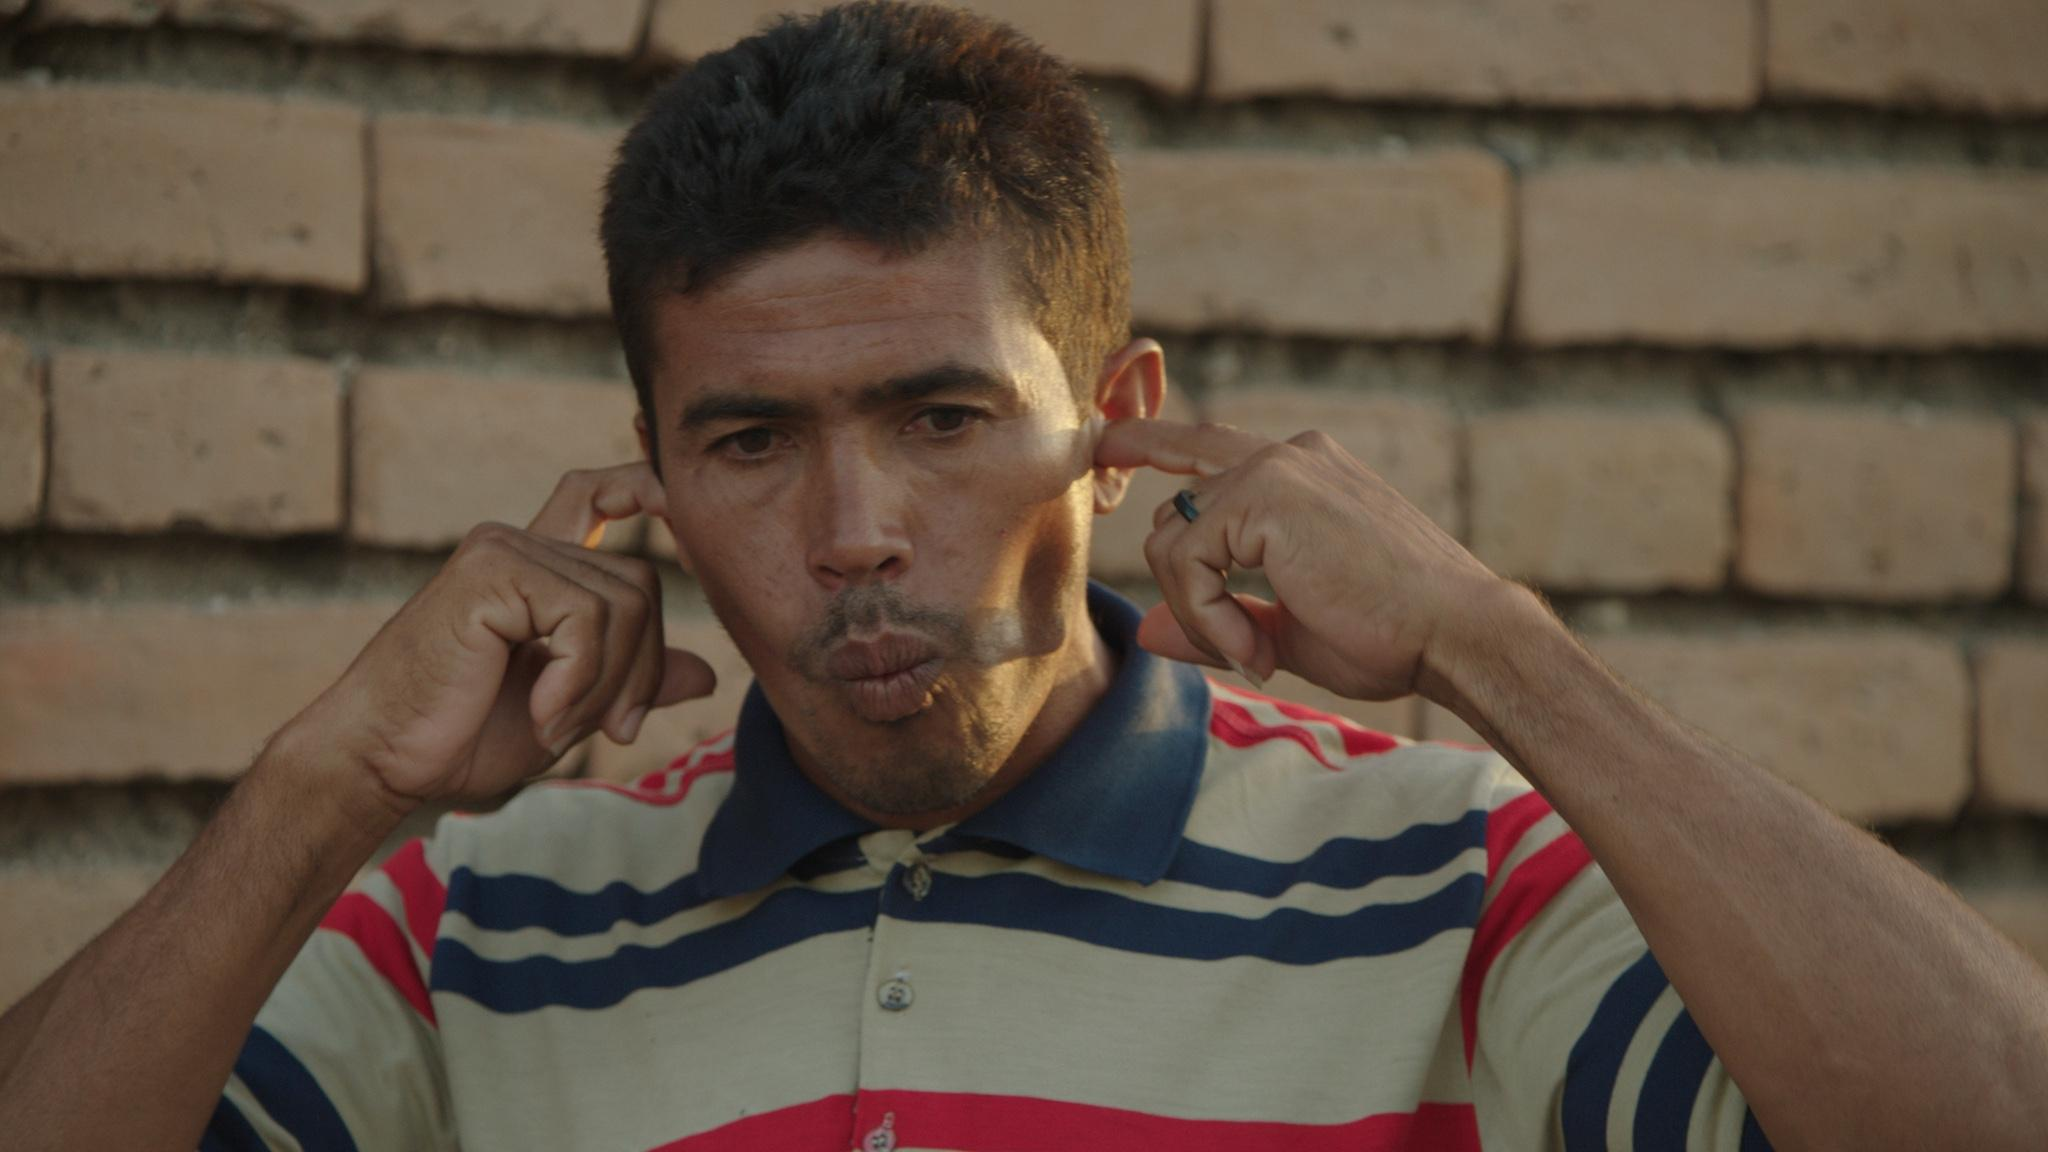 A man wearing a striped polo shirt purses his lips while placing his index fingers in each ear.